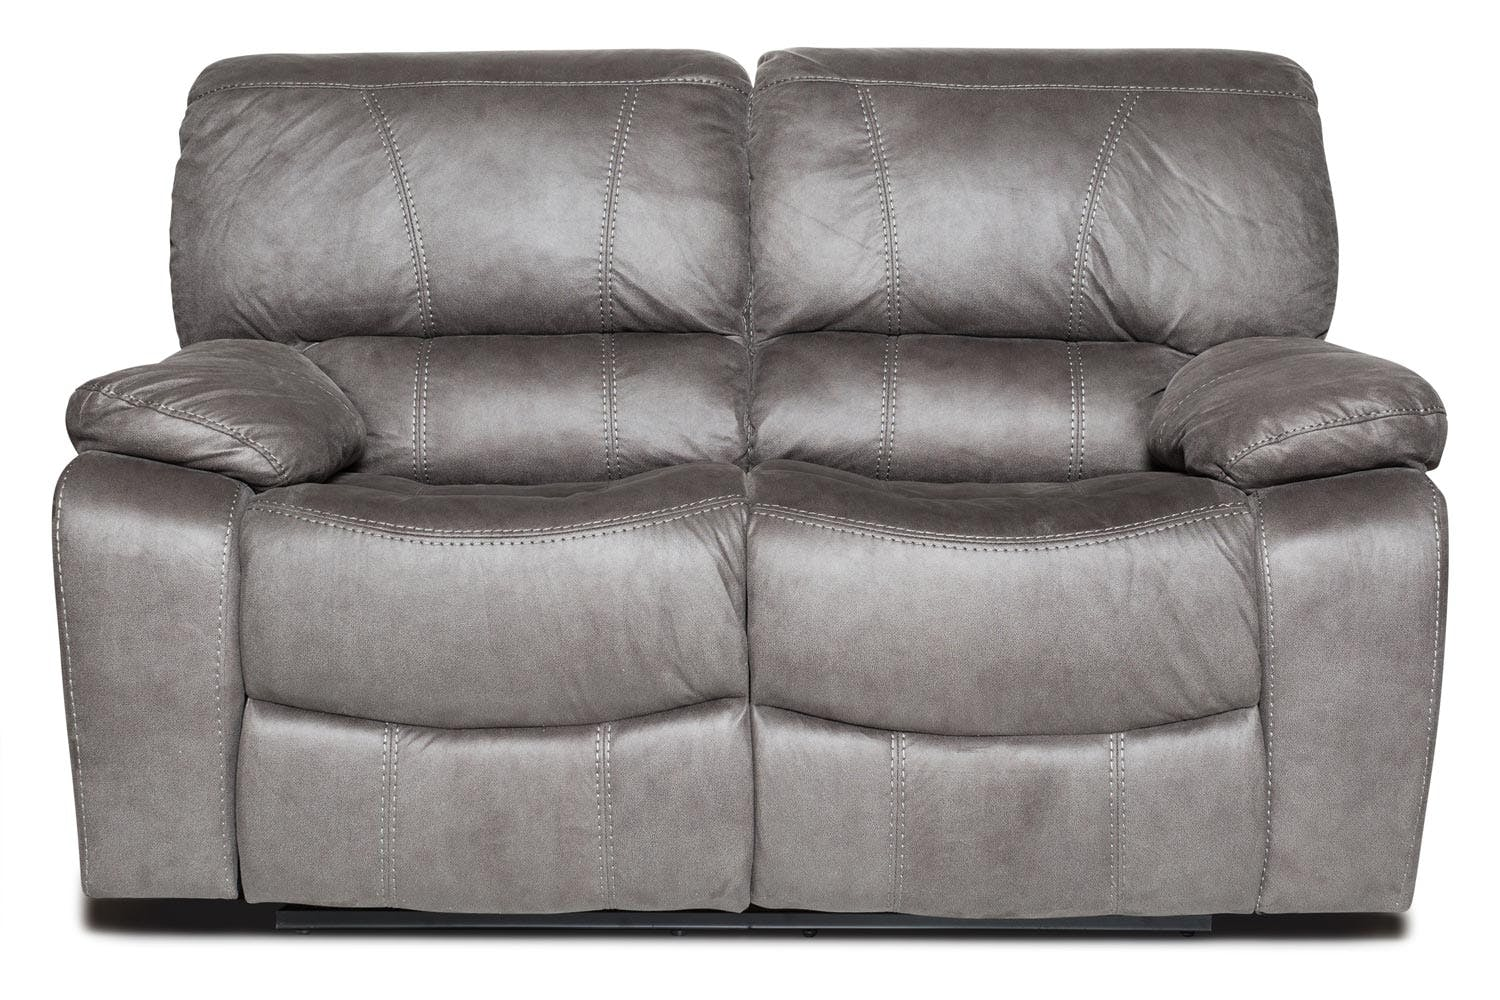 Cooper 2 Seater Recliner Sofa Grey